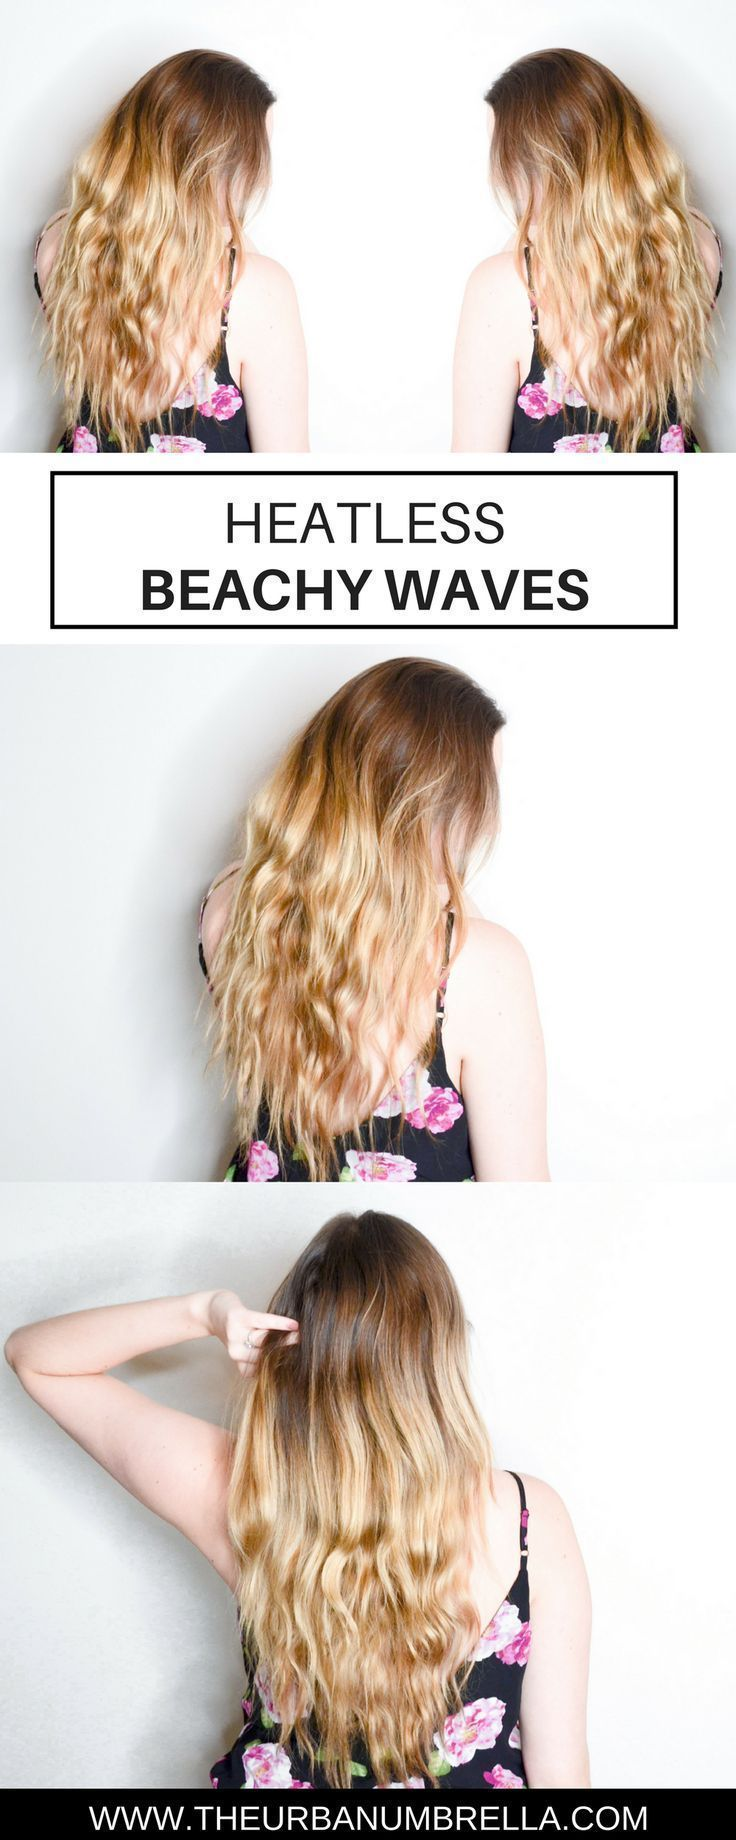 How To Get Beachy Waves Without Heat Tools Bree Aylwin Style Beauty Aylwin Beachy Beauty Hair Without Heat Curls Without Heat How To Curl Your Hair